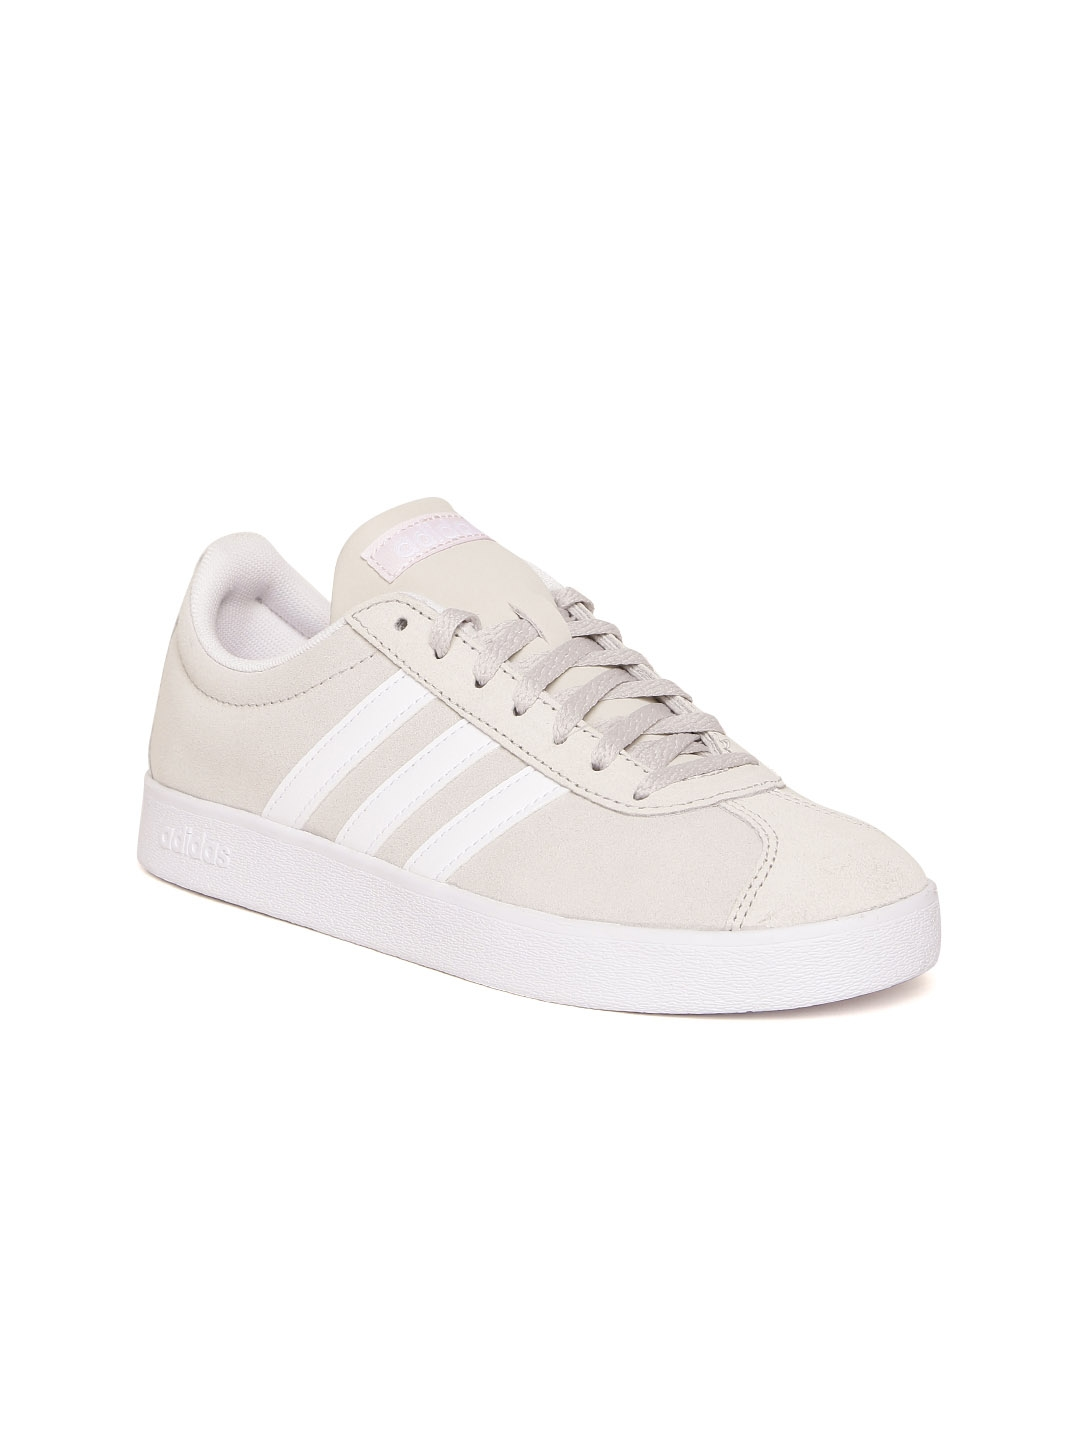 1cd9daa711eedd Buy ADIDAS Women Beige VL COURT 2.0 Sneakers - Casual Shoes for ...